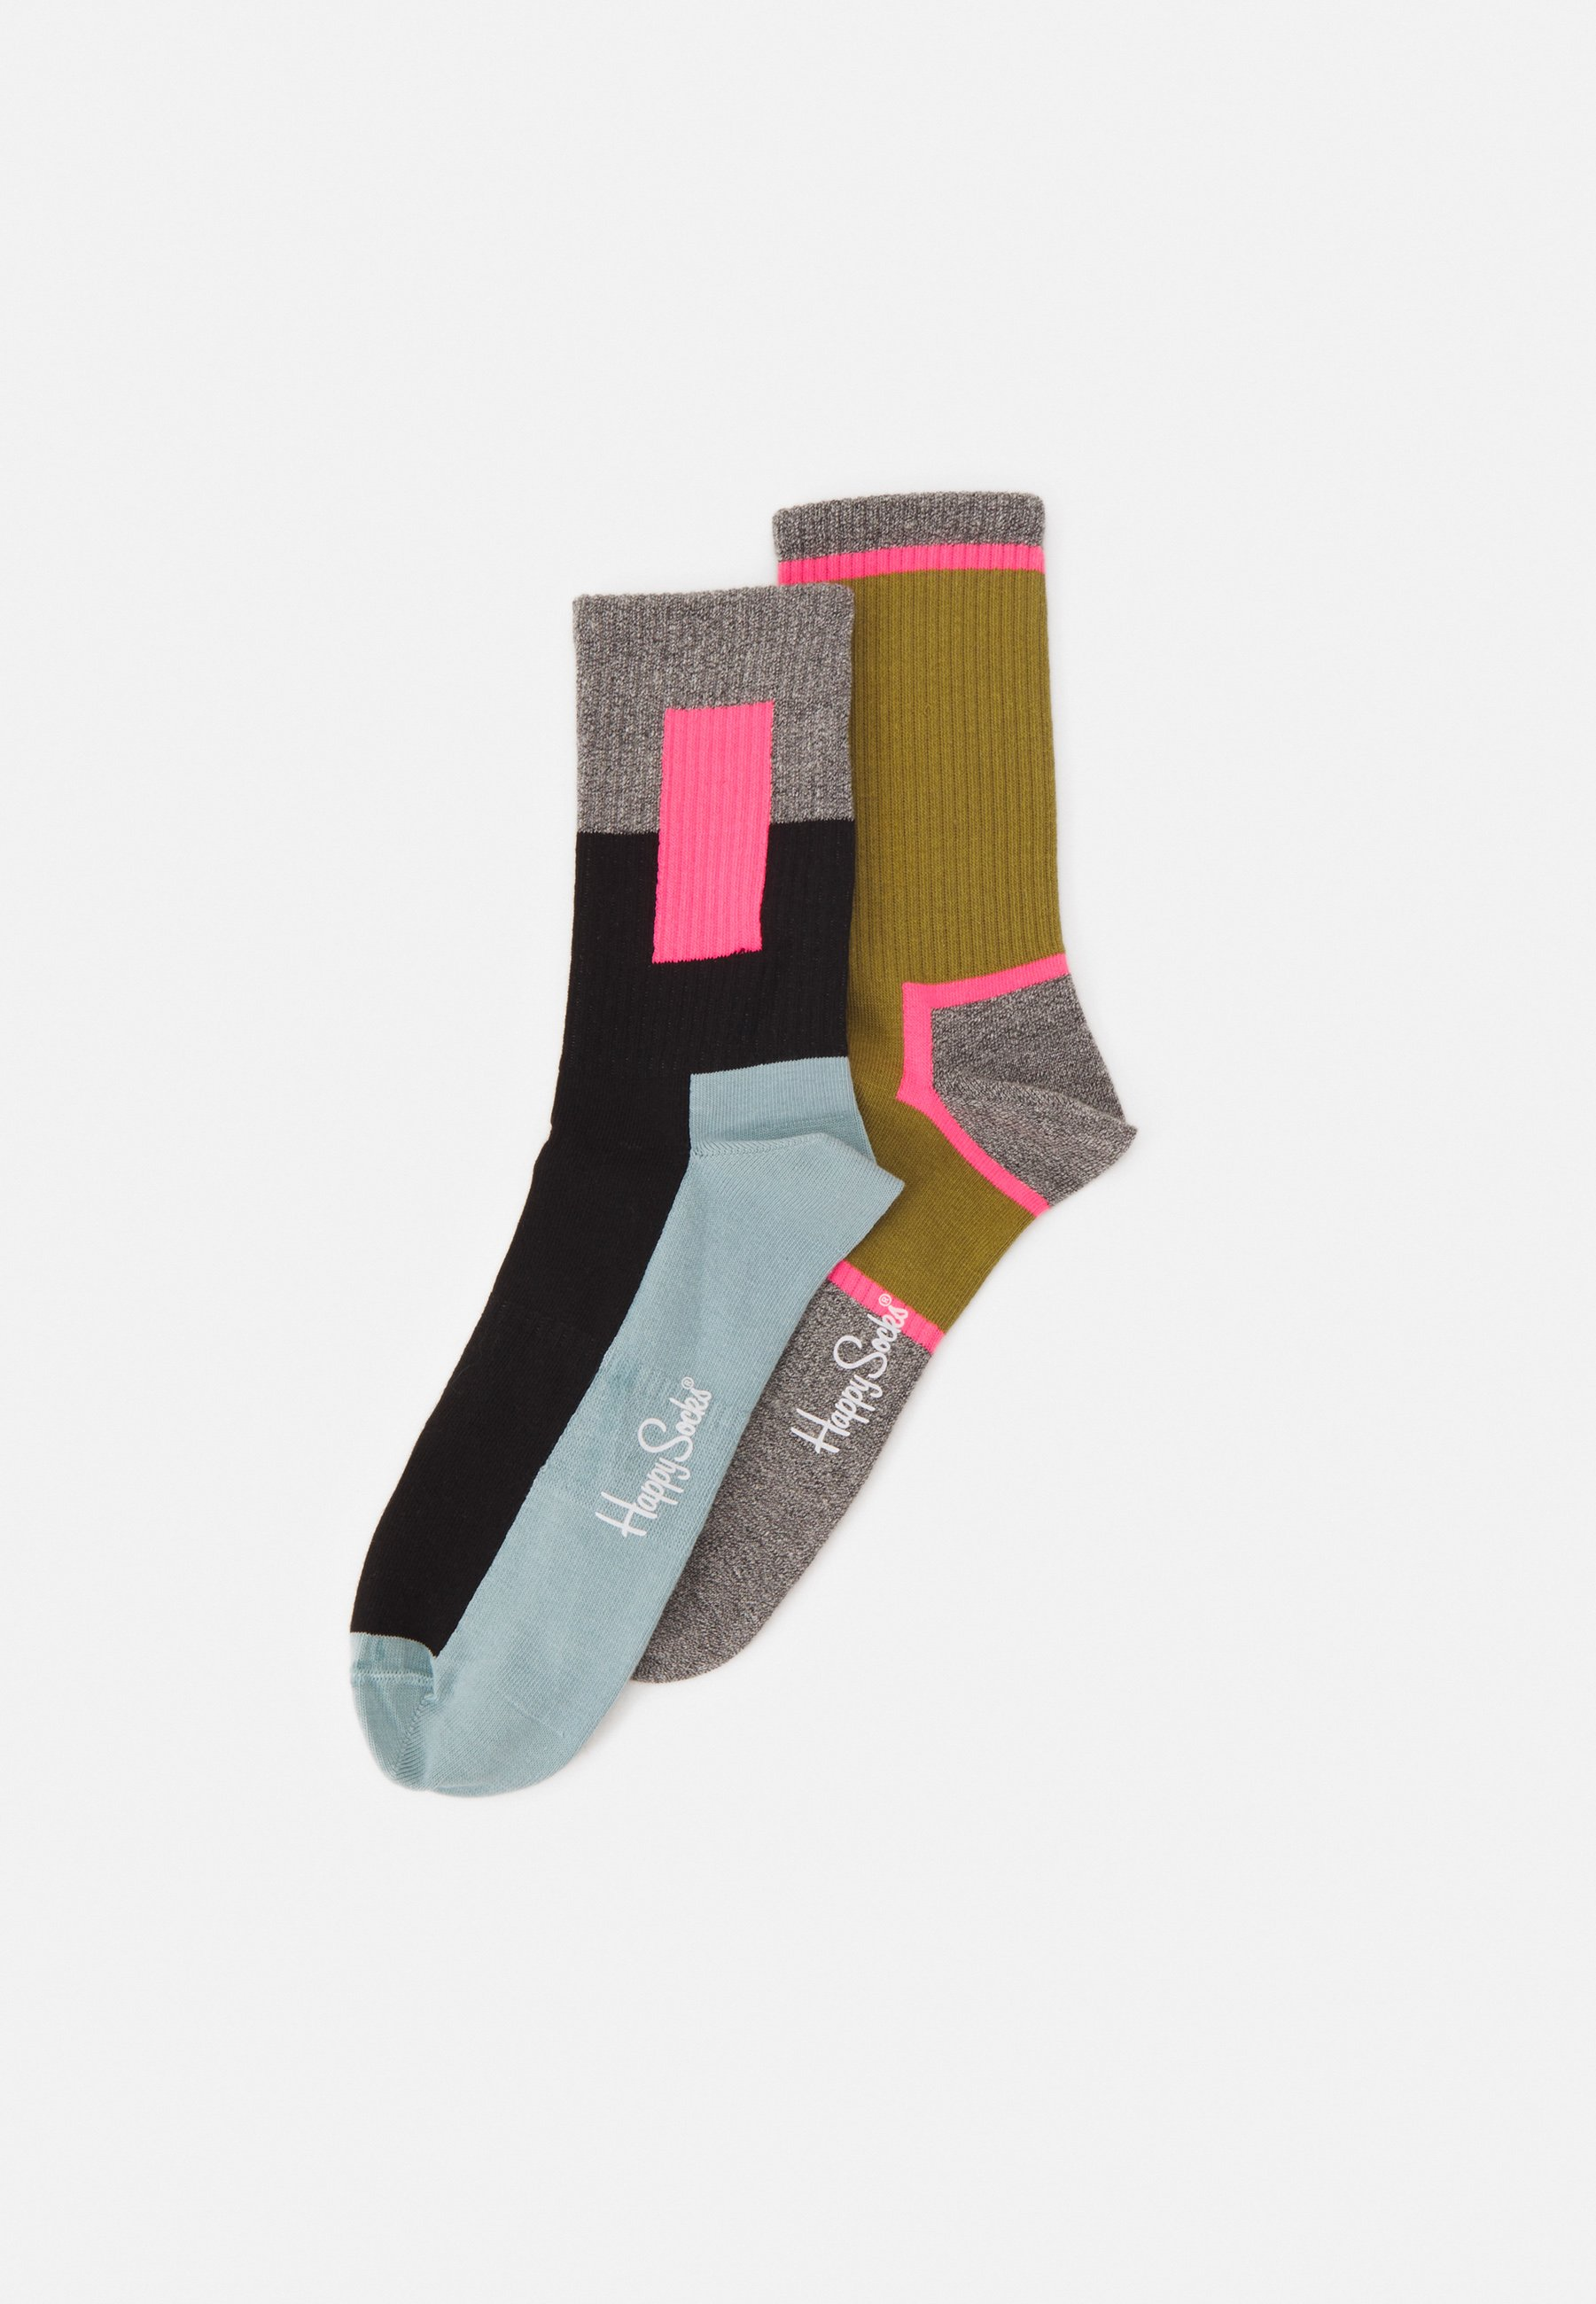 Femme BLOCKED + GRAPHIC 2 PACK UNISEX - Chaussettes